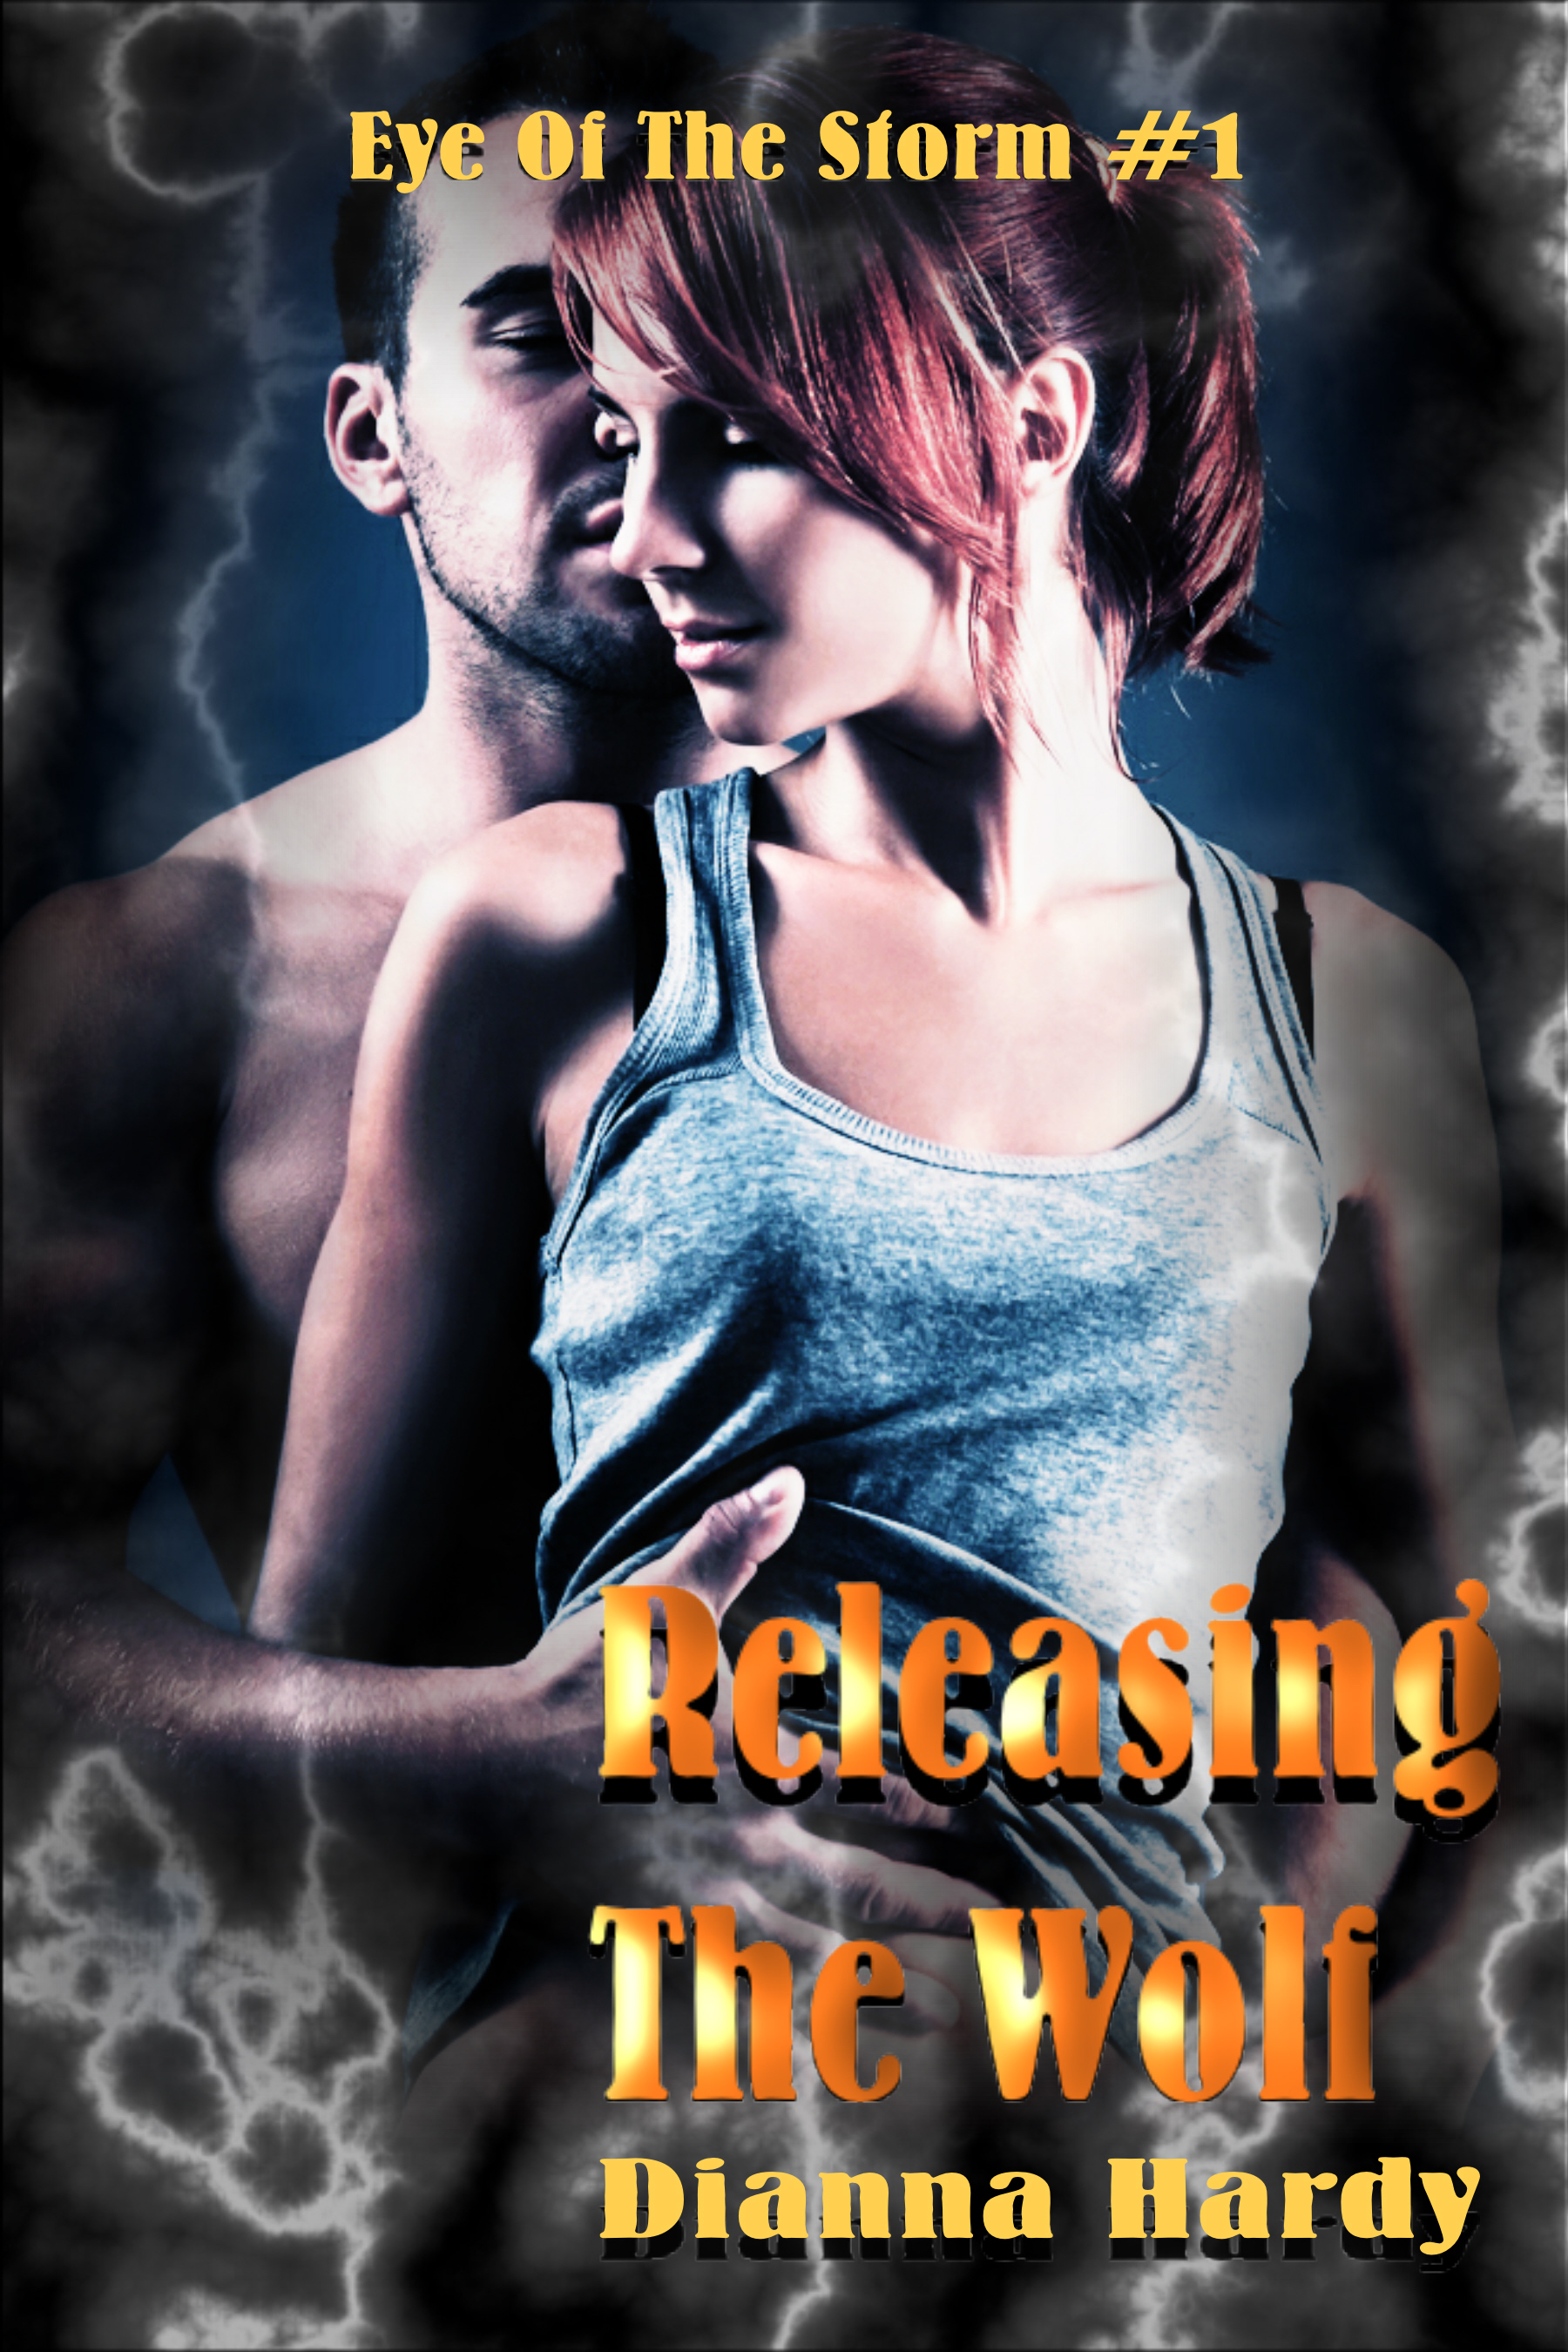 Releasing The Wolf (Eye Of The Storm #1)